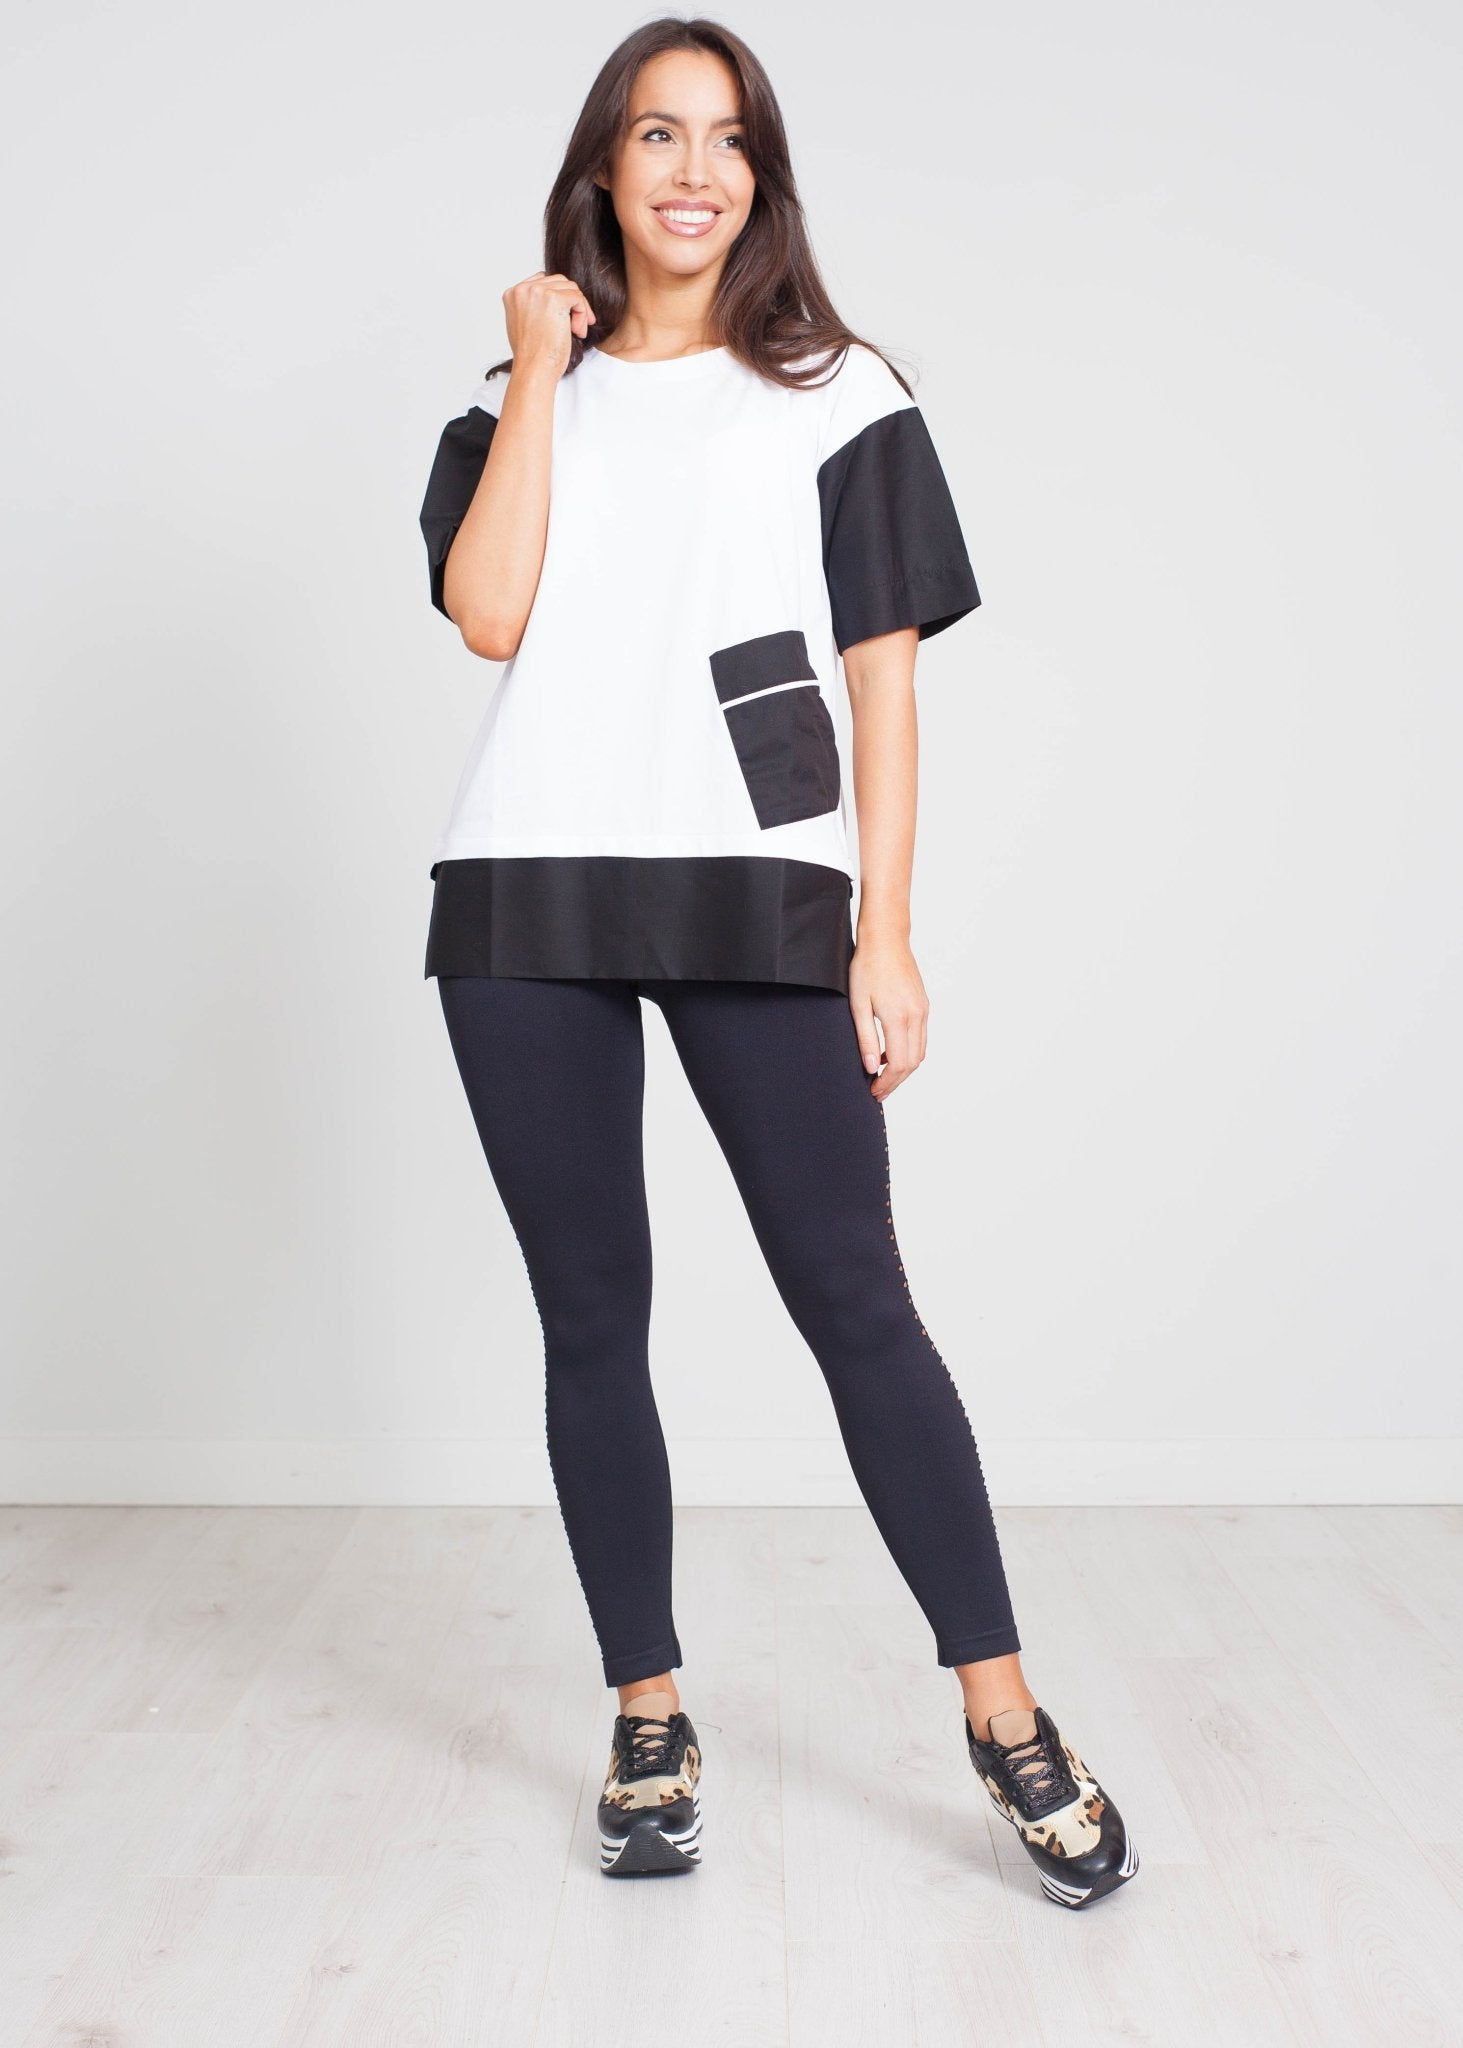 Cleo Contrast Pocket Top In White - The Walk in Wardrobe